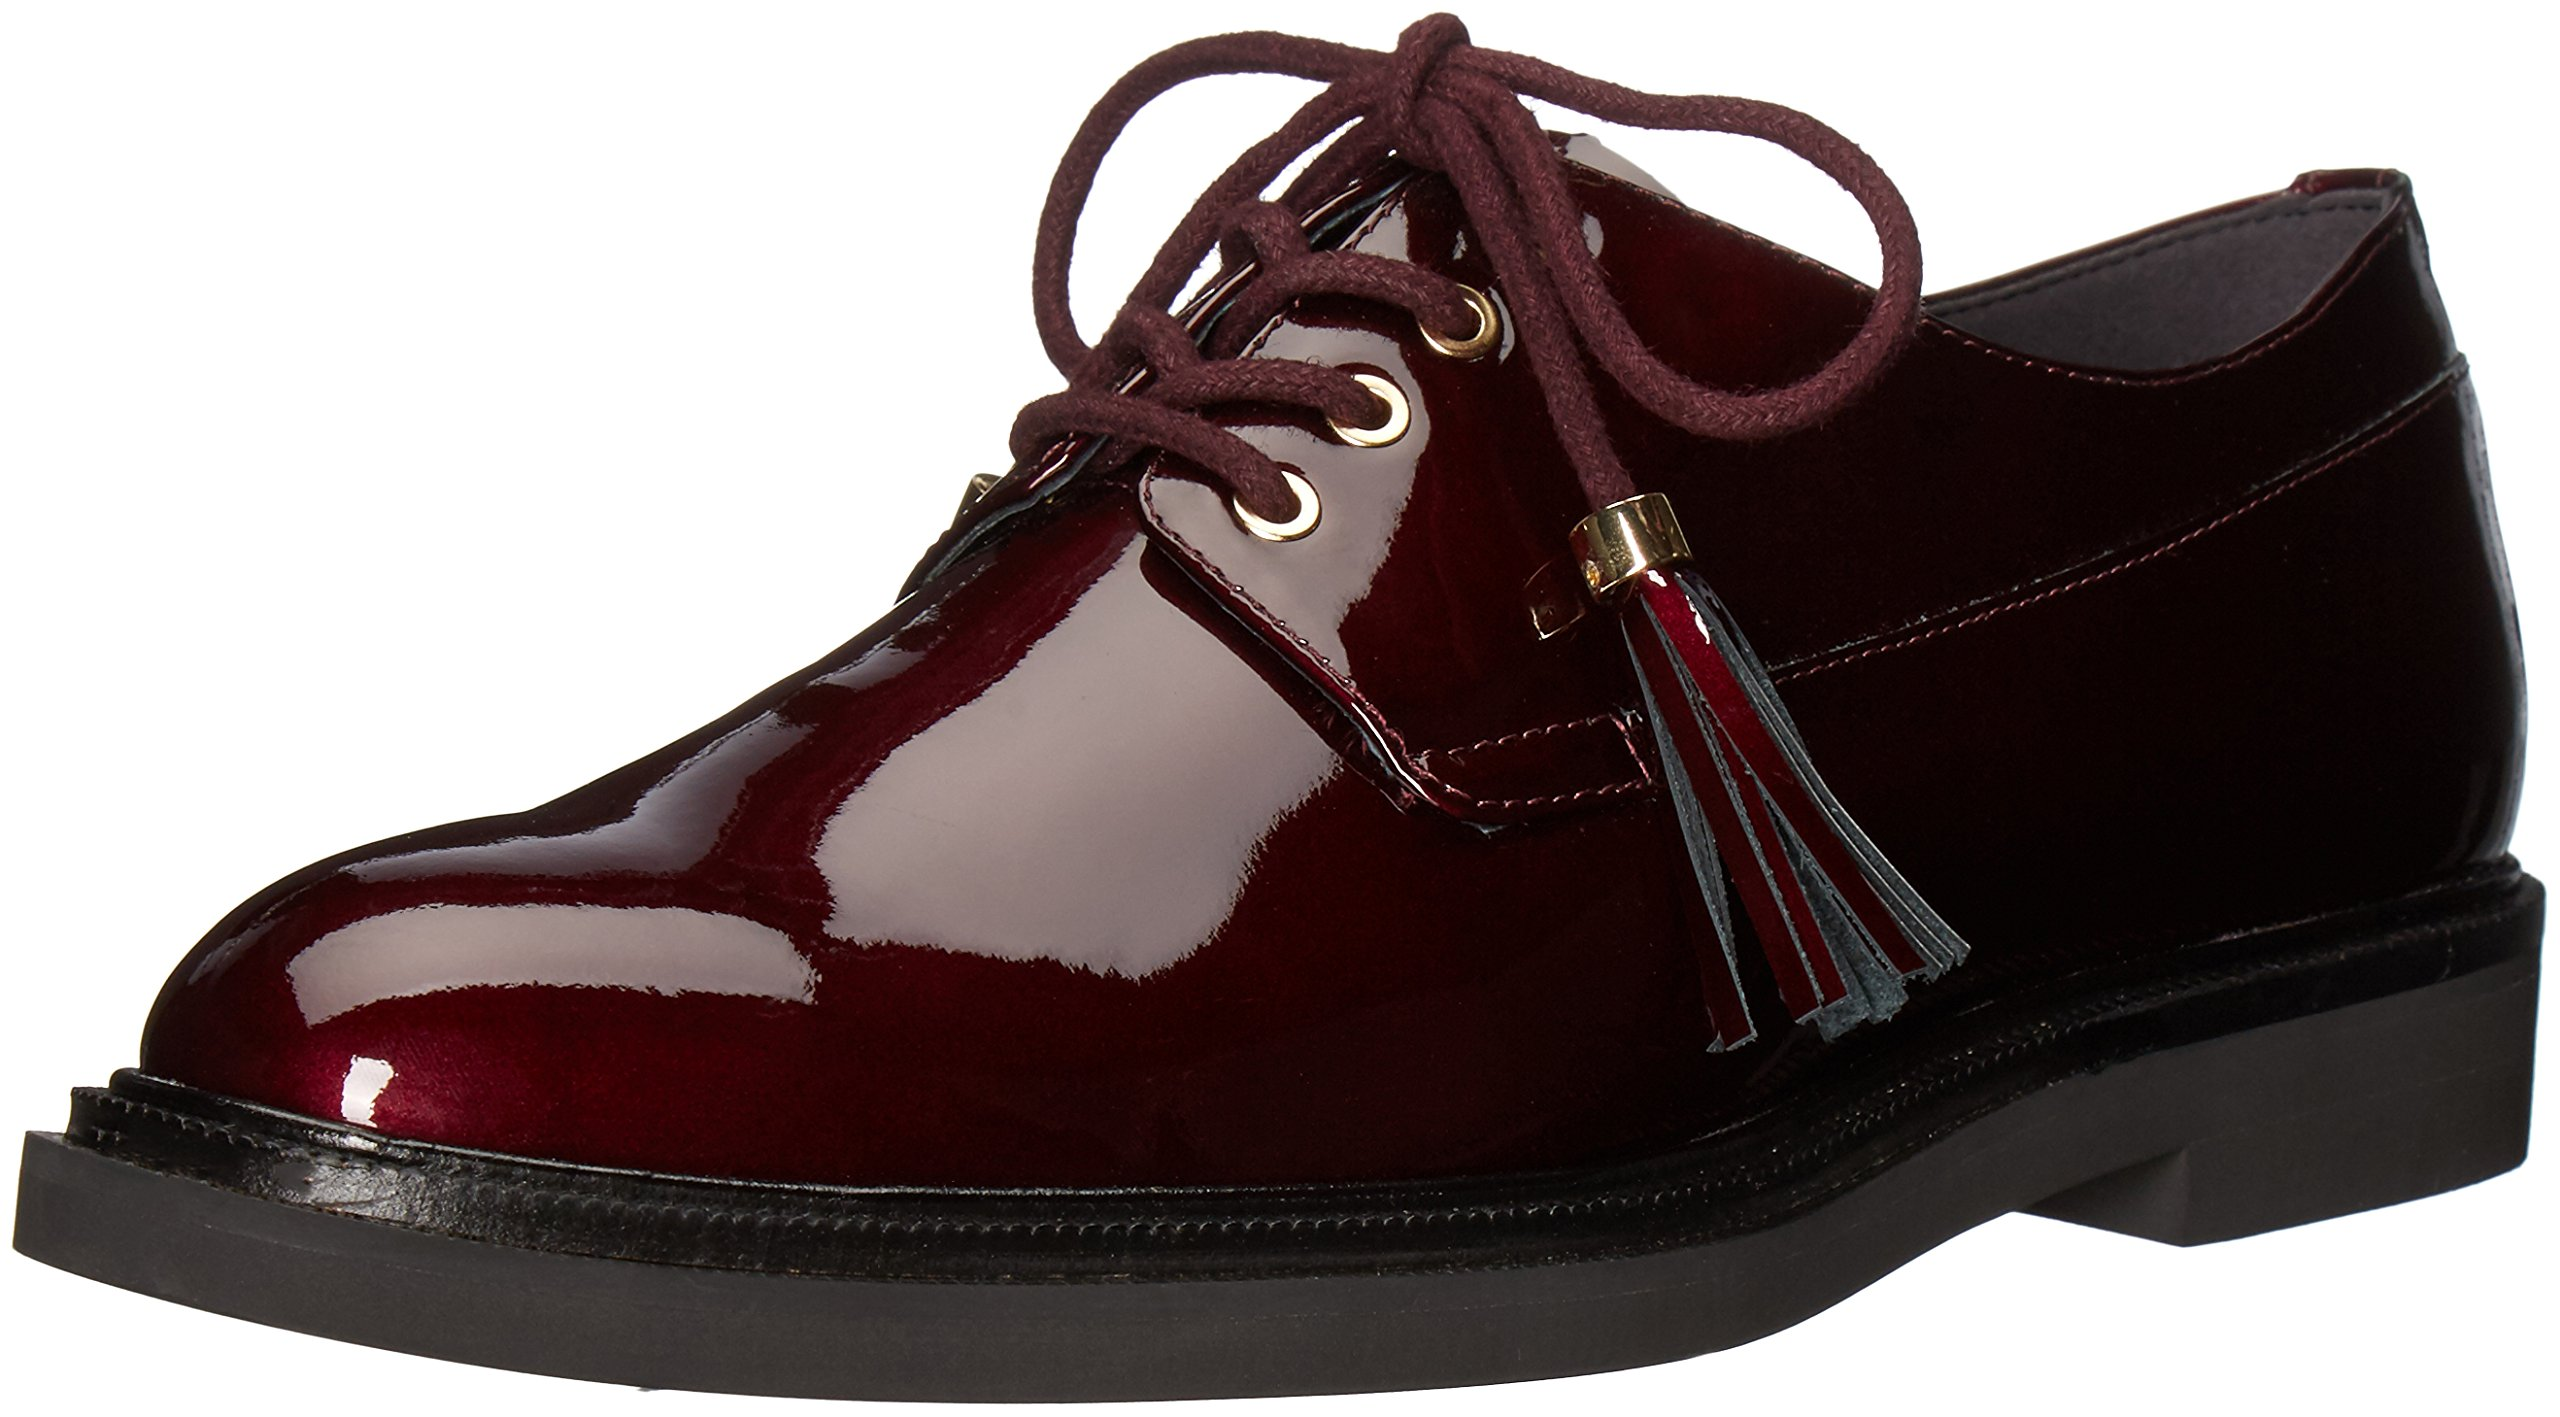 Kenneth Cole New York Women's Annie Menswear Style Leather Oxford, Wine, 9.5 M US